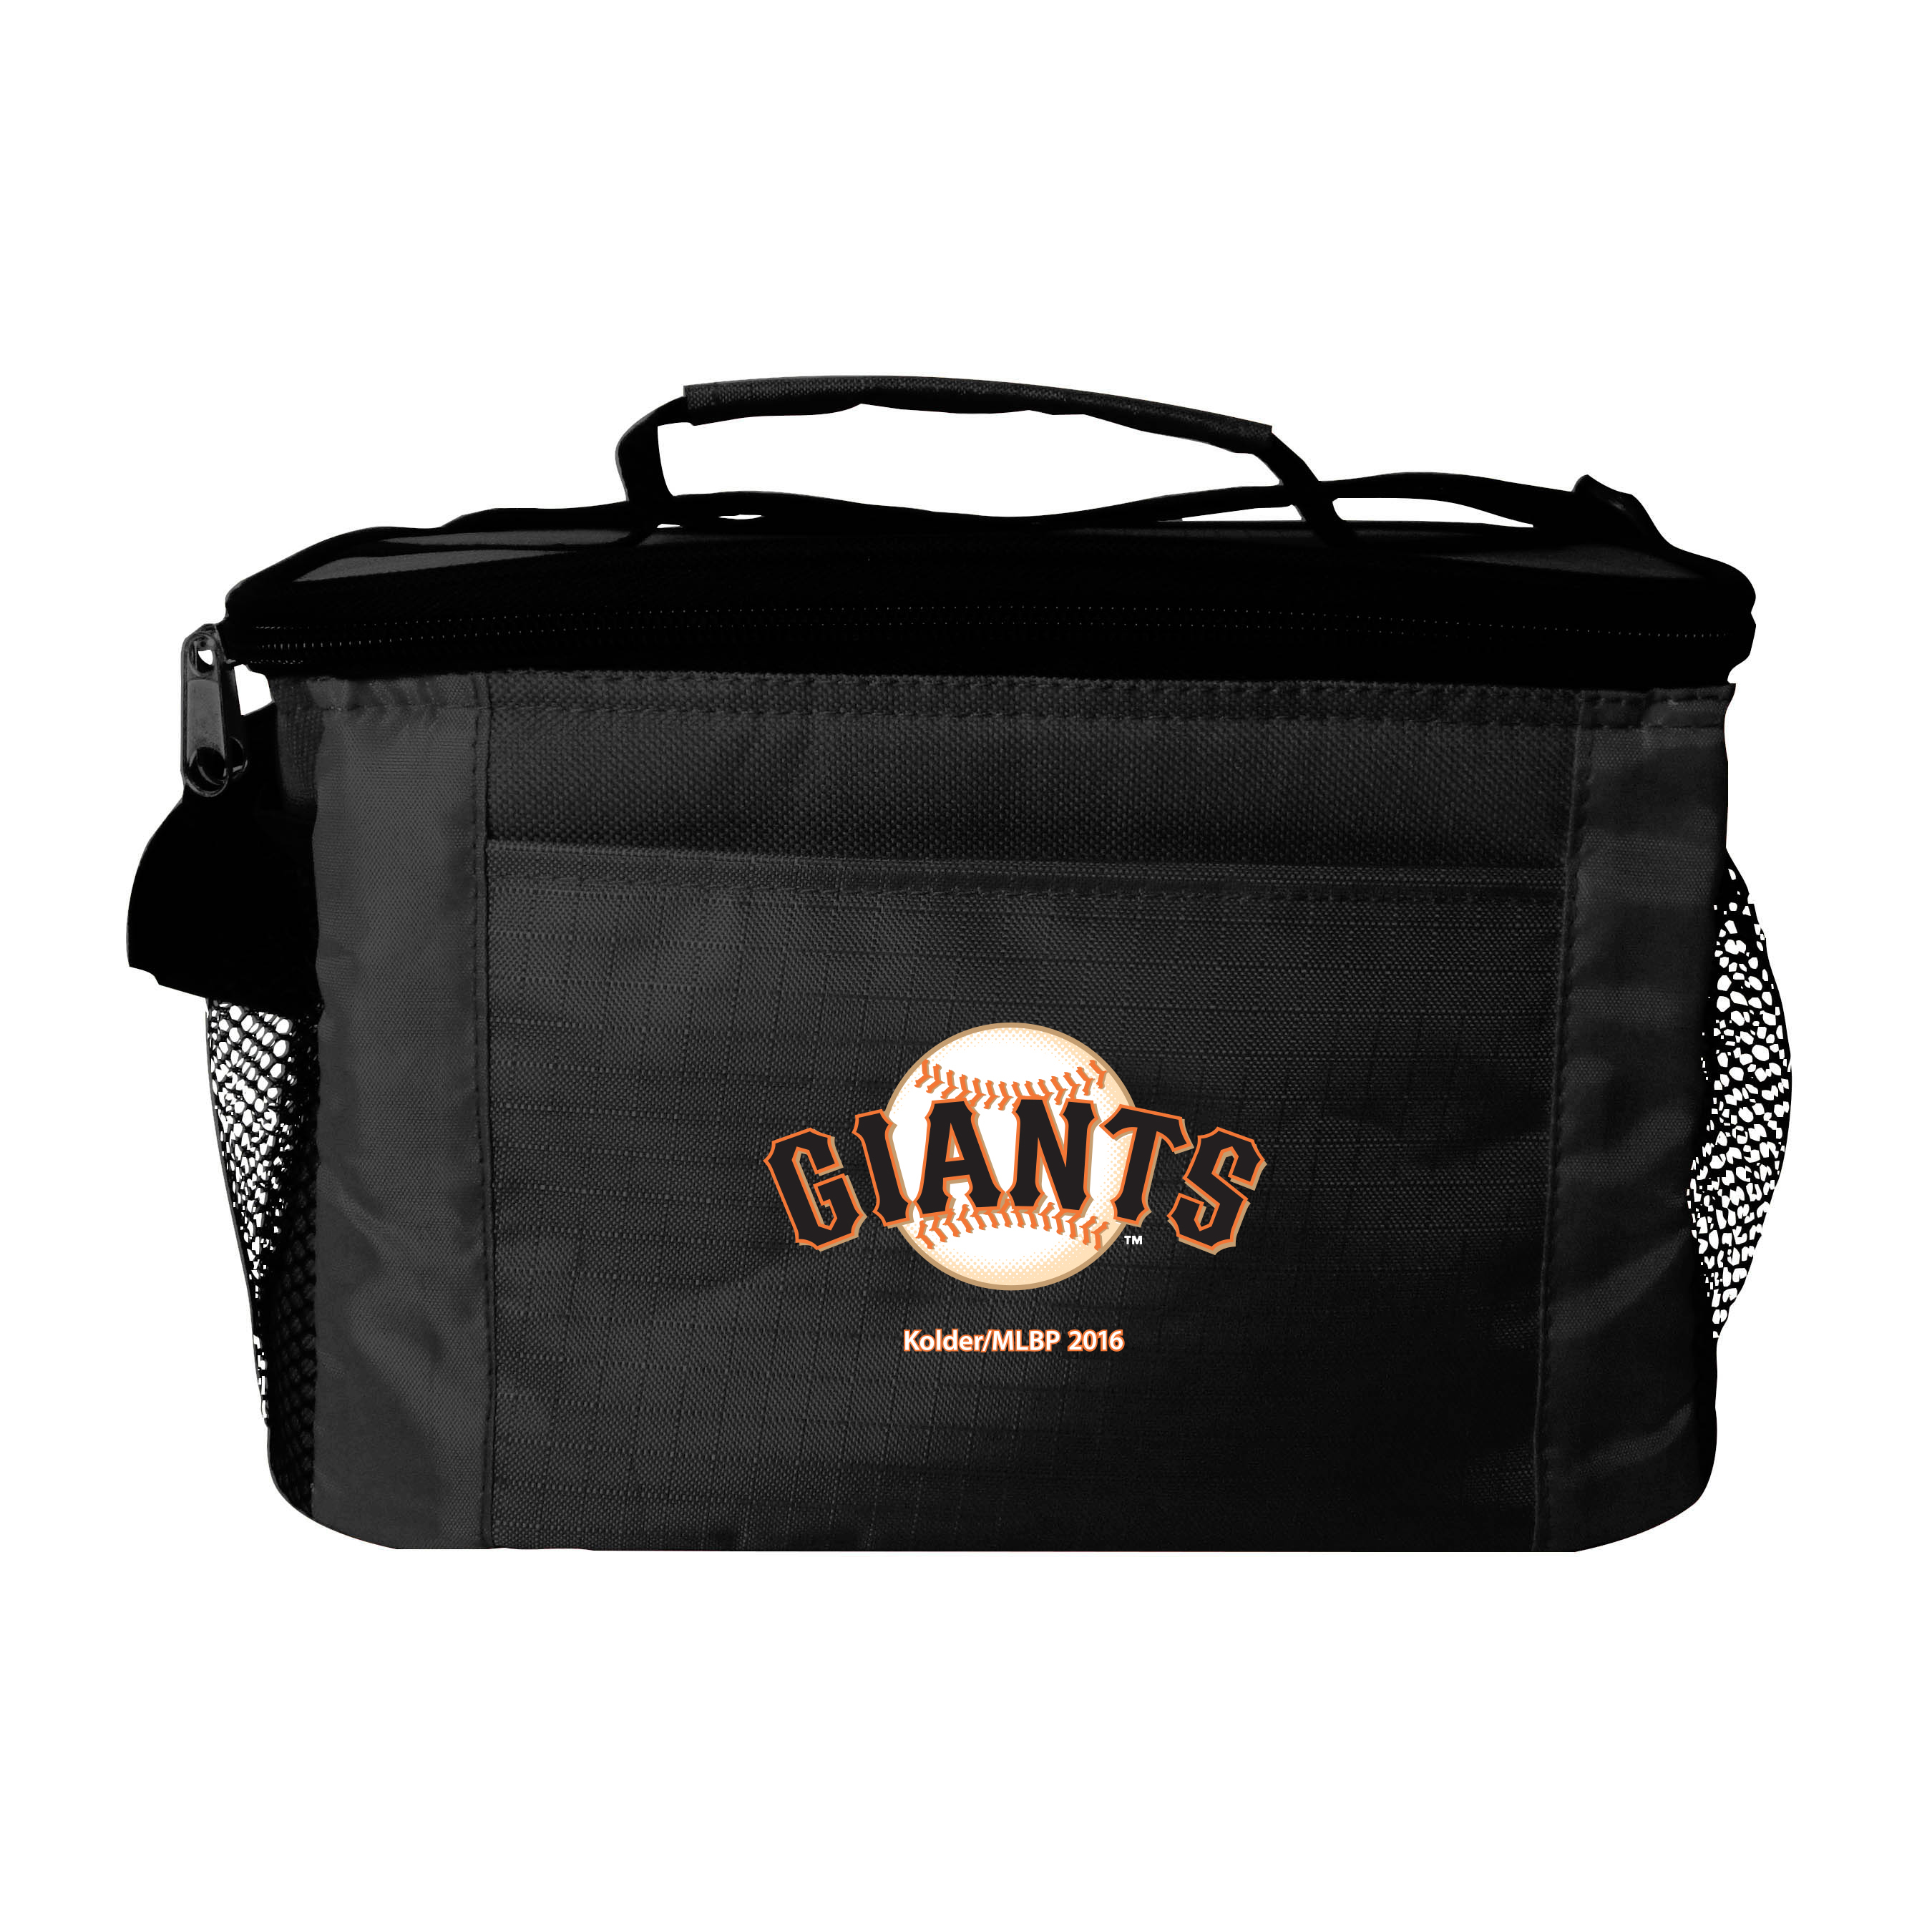 Kooler Bag - San Francisco Giants (Holds a 6 pack)